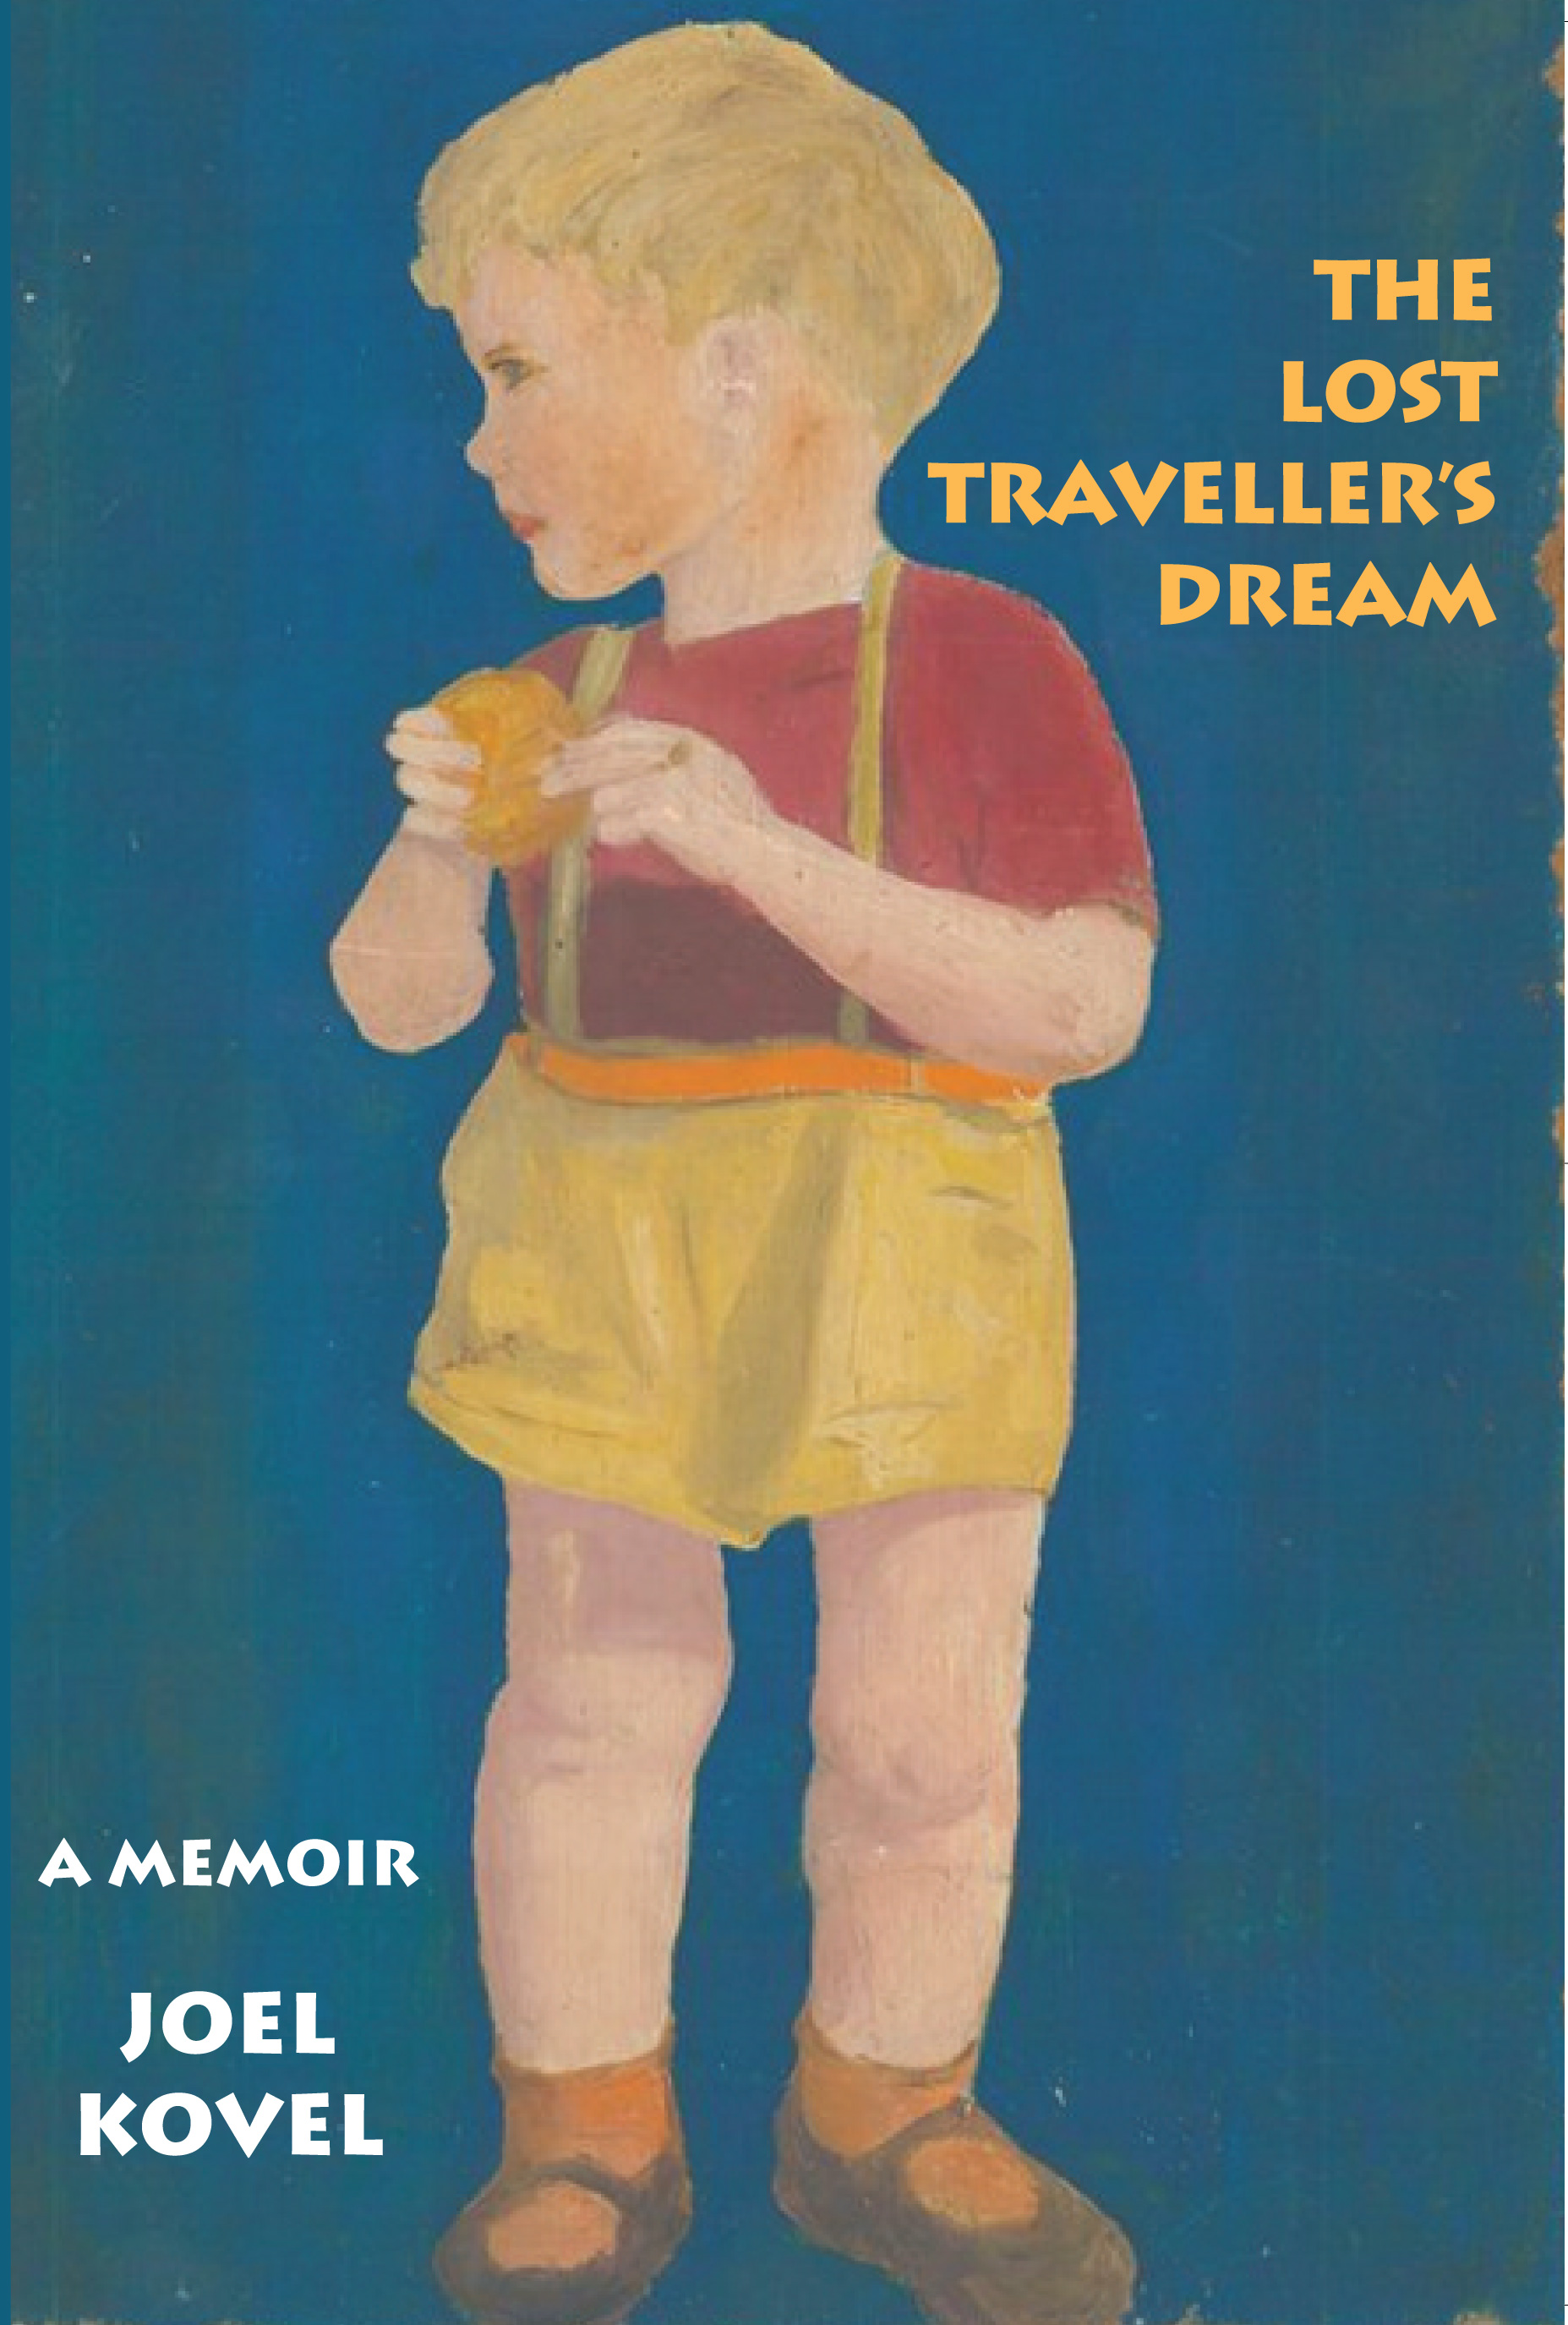 The Lost Traveller's Dream